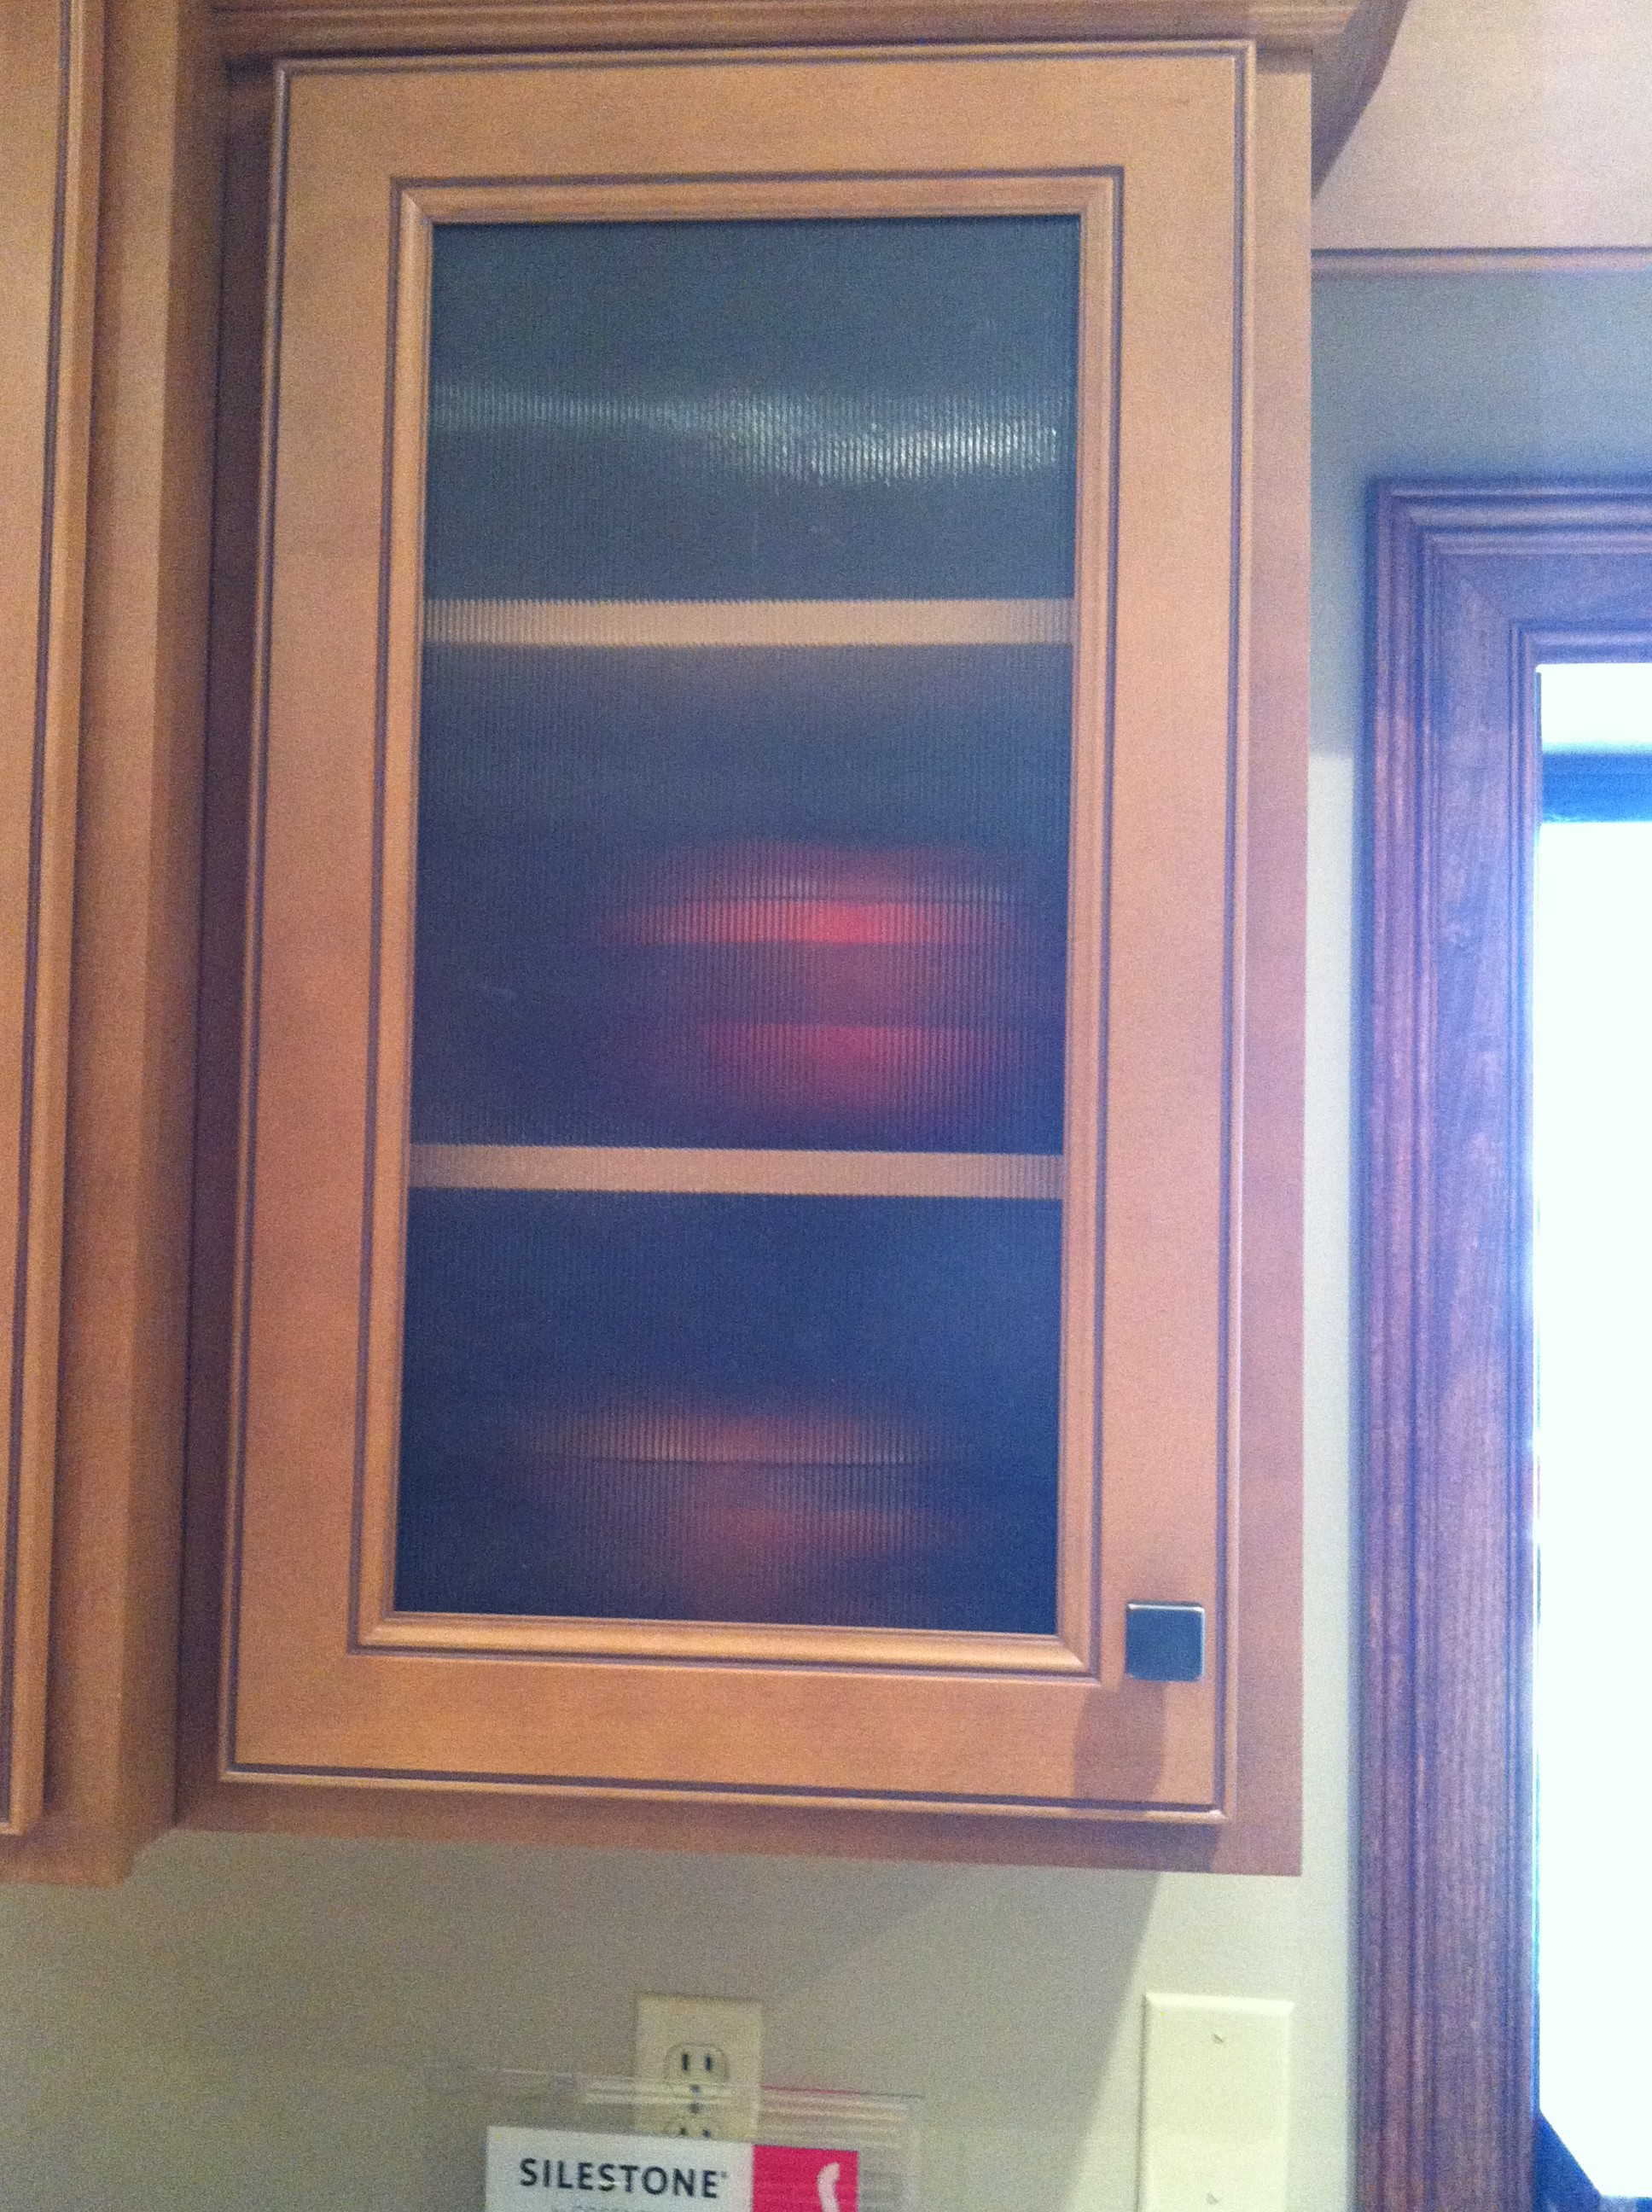 Another Con To Installing Glass Doors Is That Over Time They Become  Discolored And May Need Replacing More Often Than Solid Cabinet Doors.